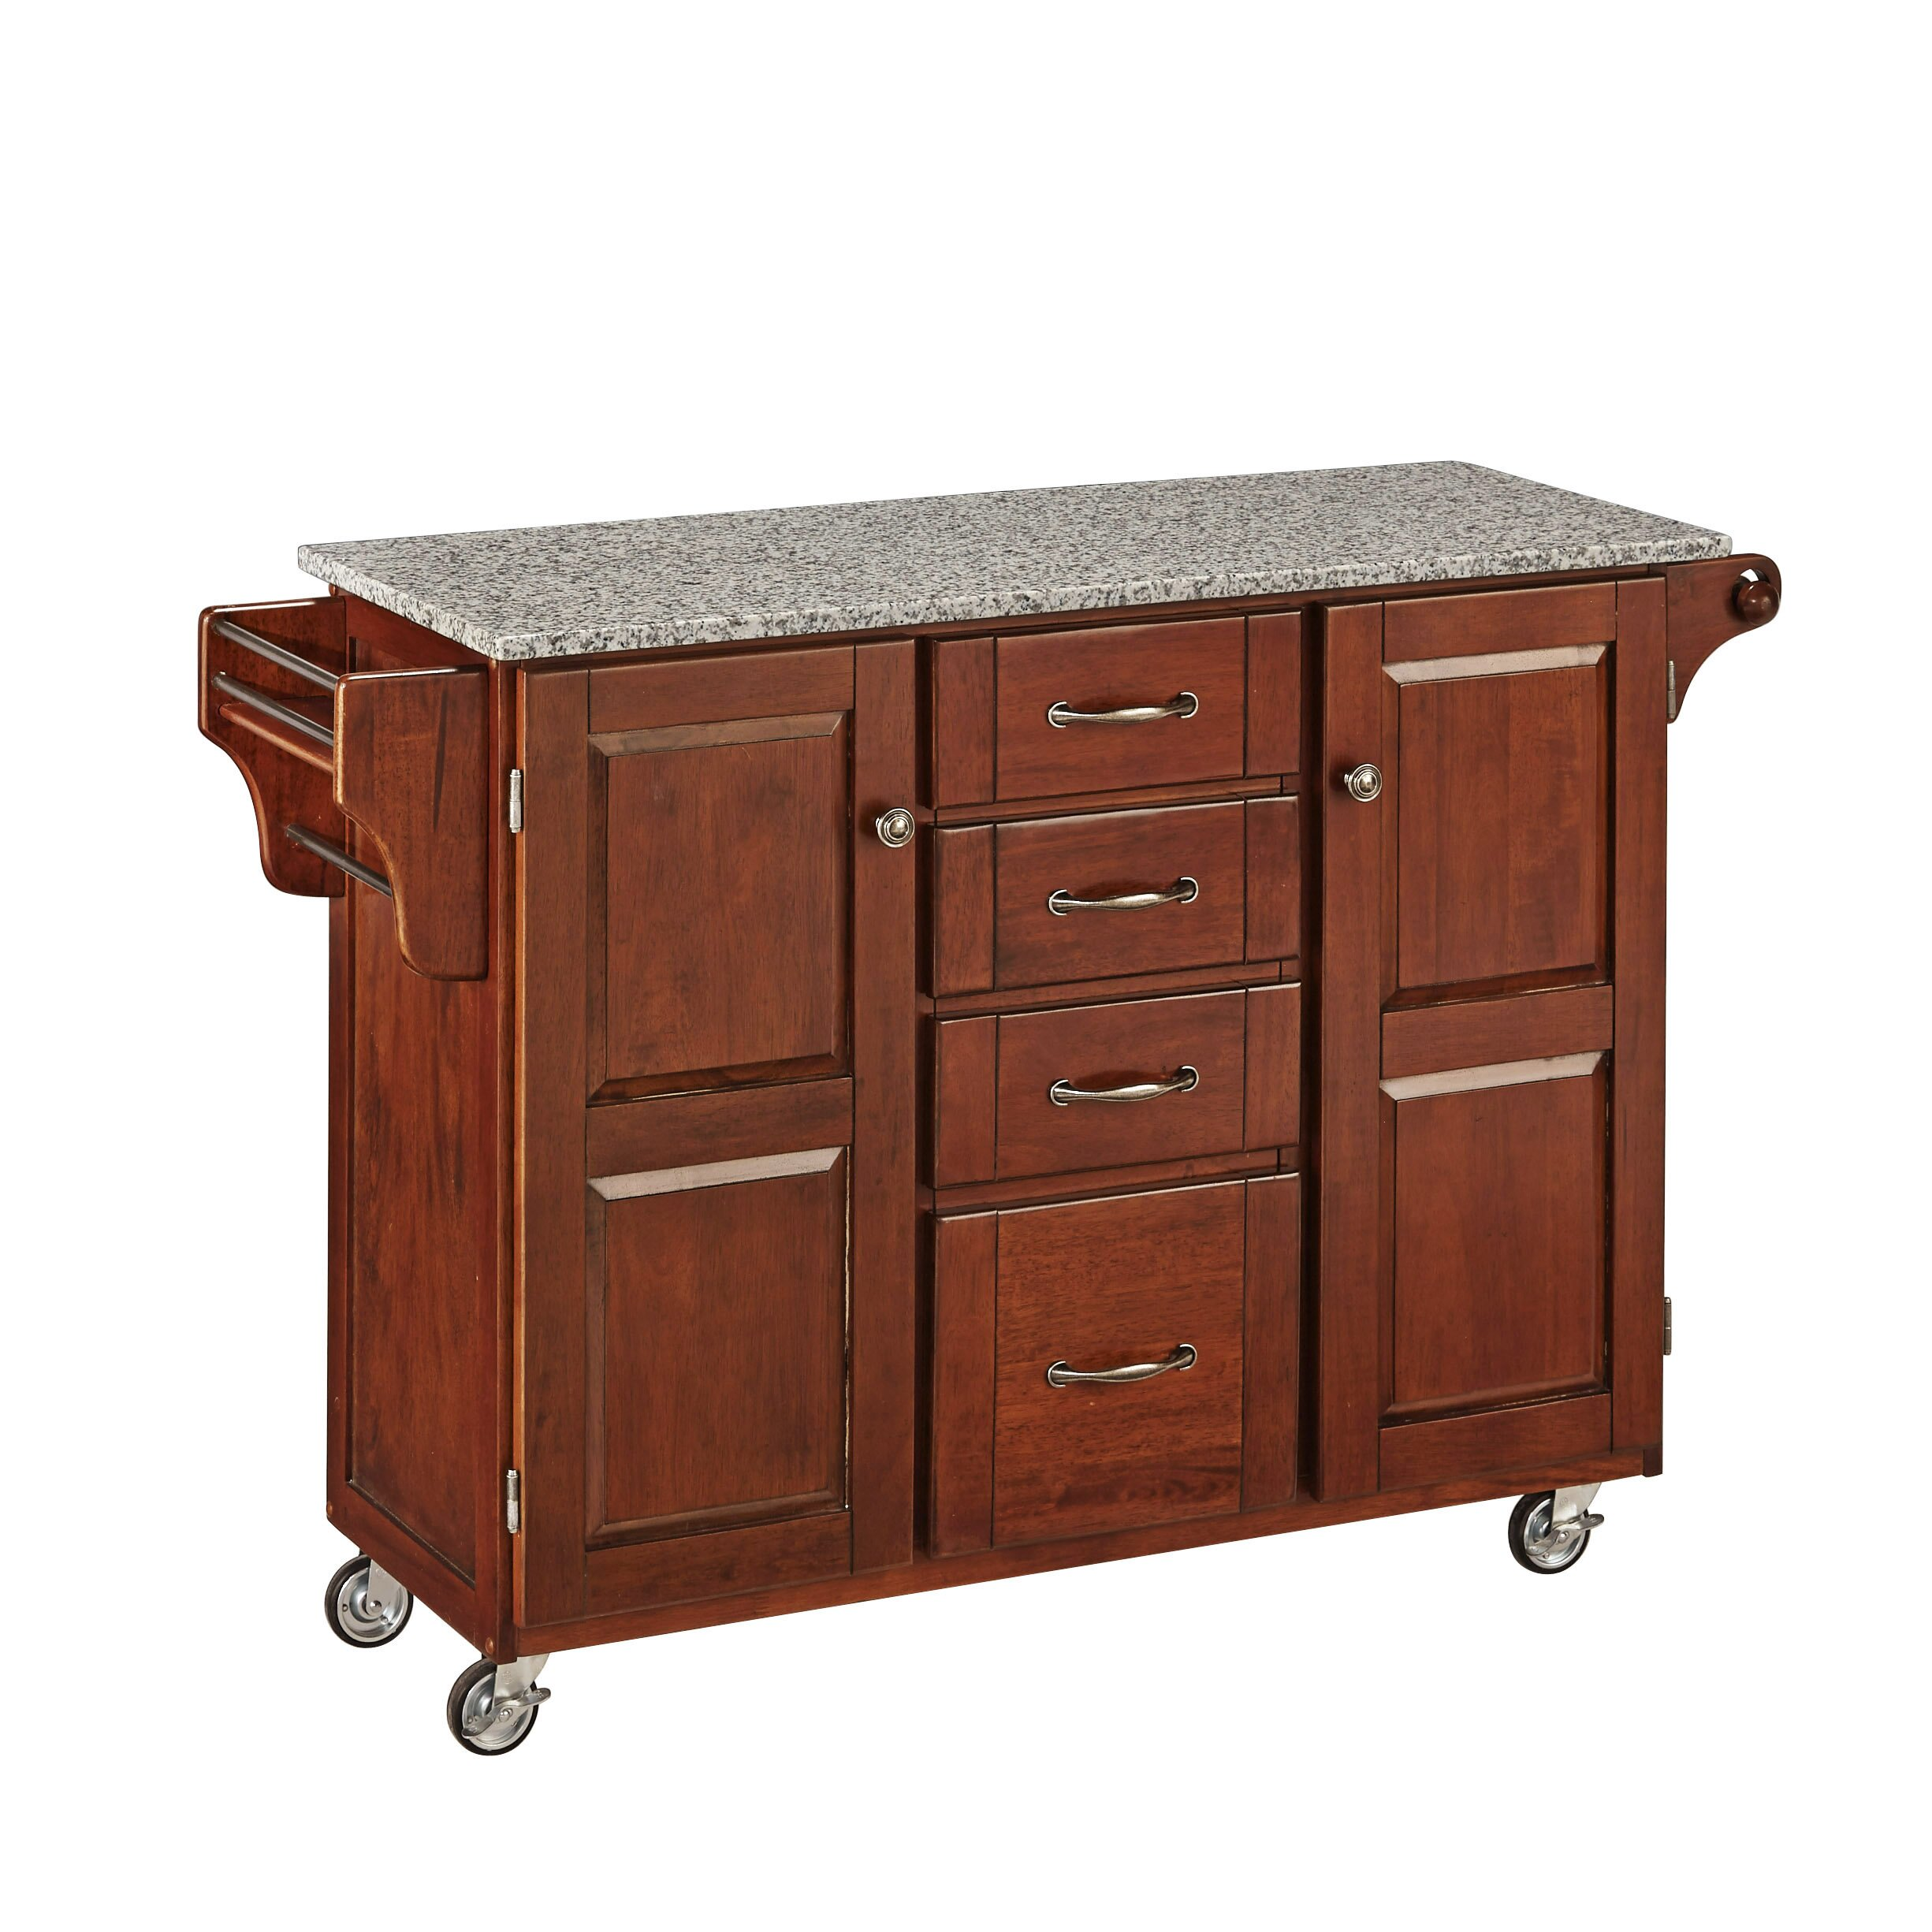 Granite Top Kitchen Island August Grove Adelle A Cart Kitchen Island With Granite Top